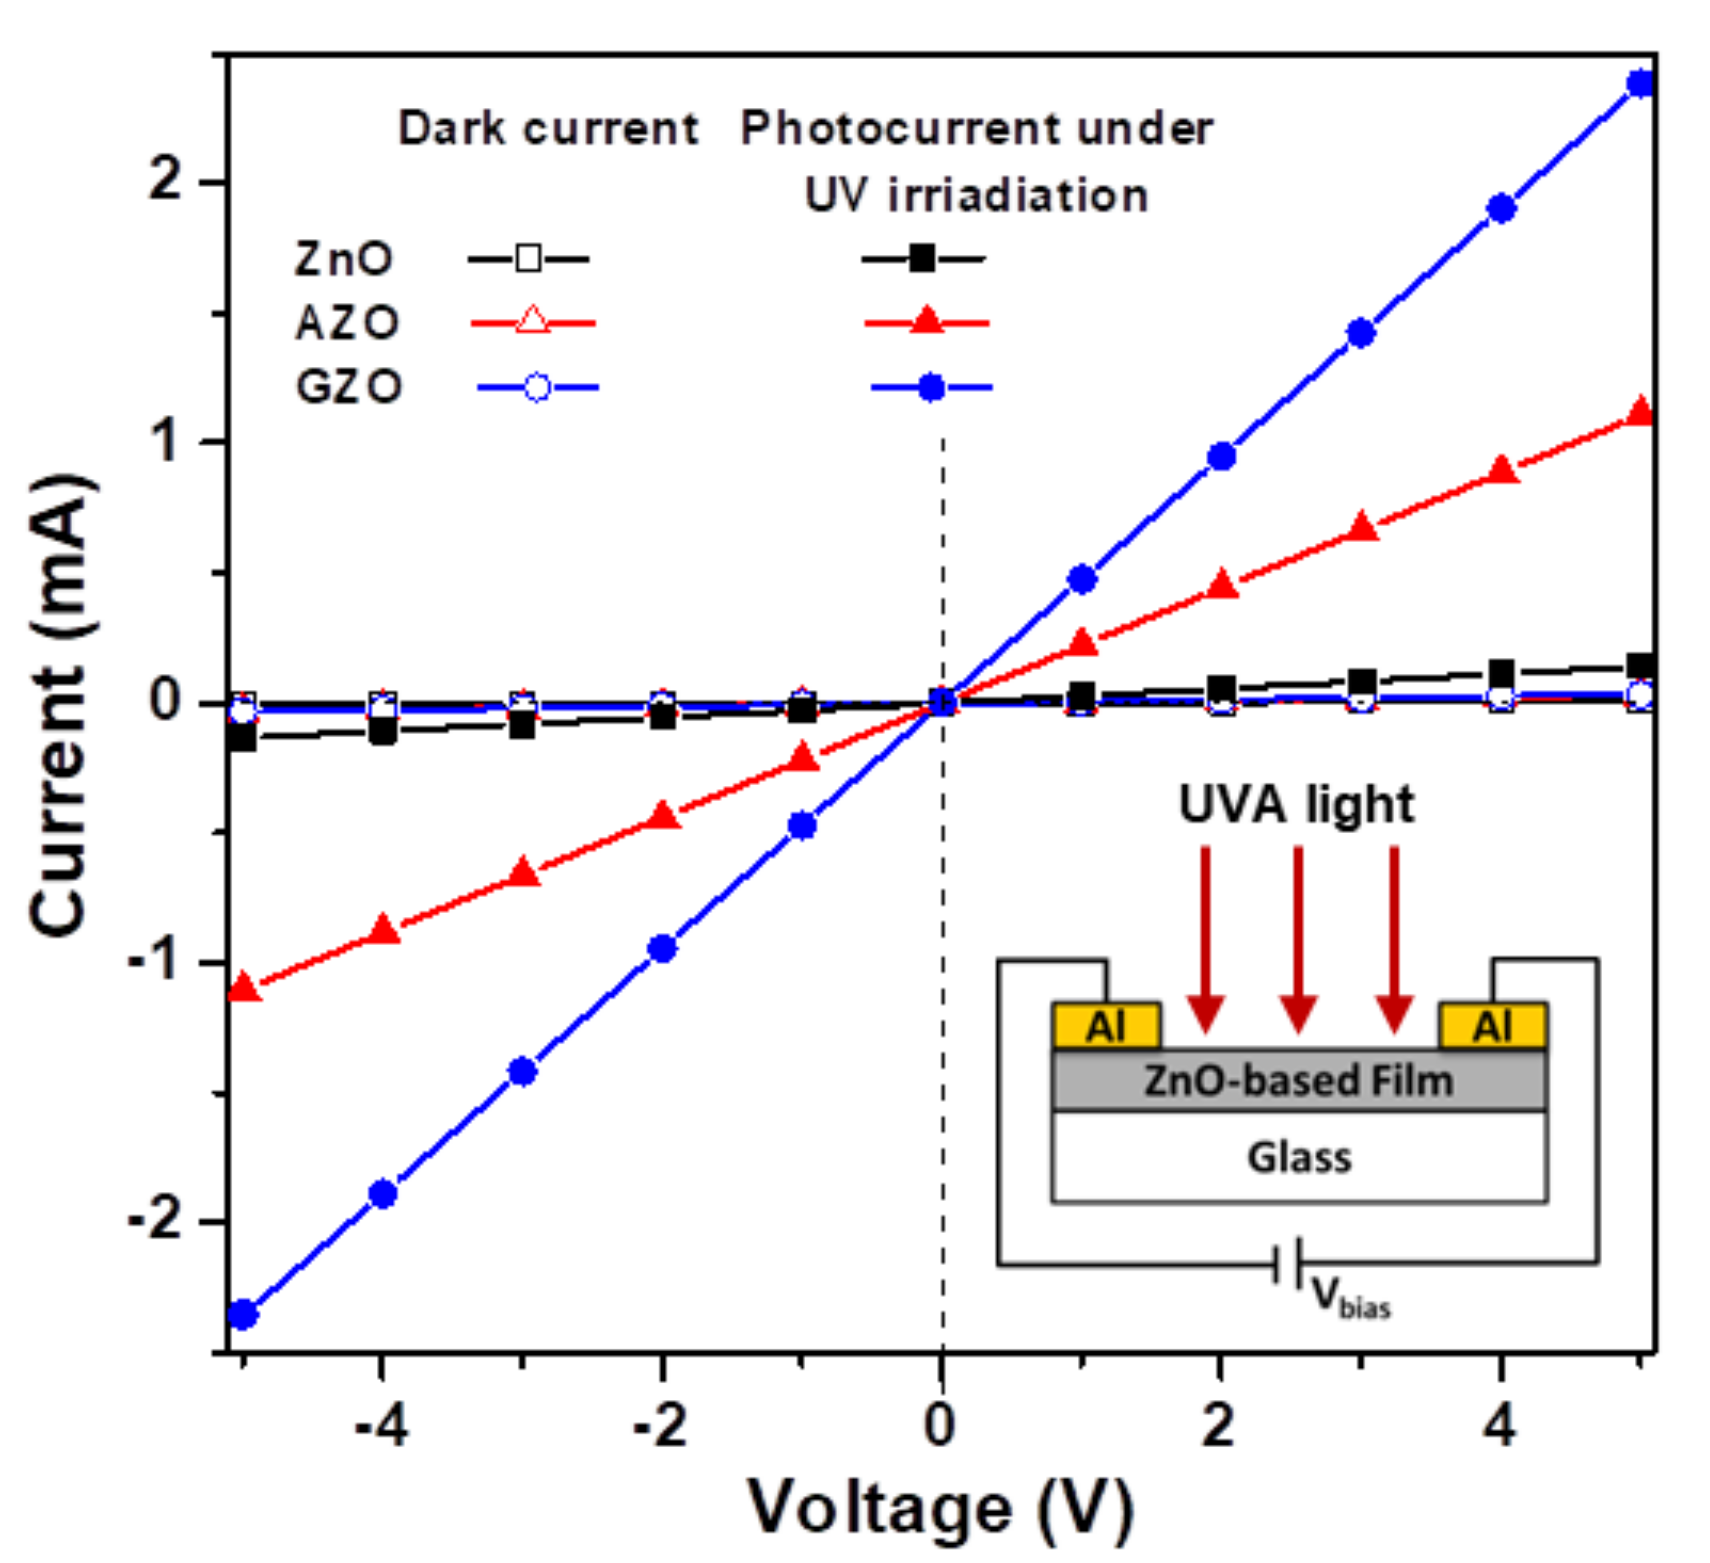 comparative analysis of dark current